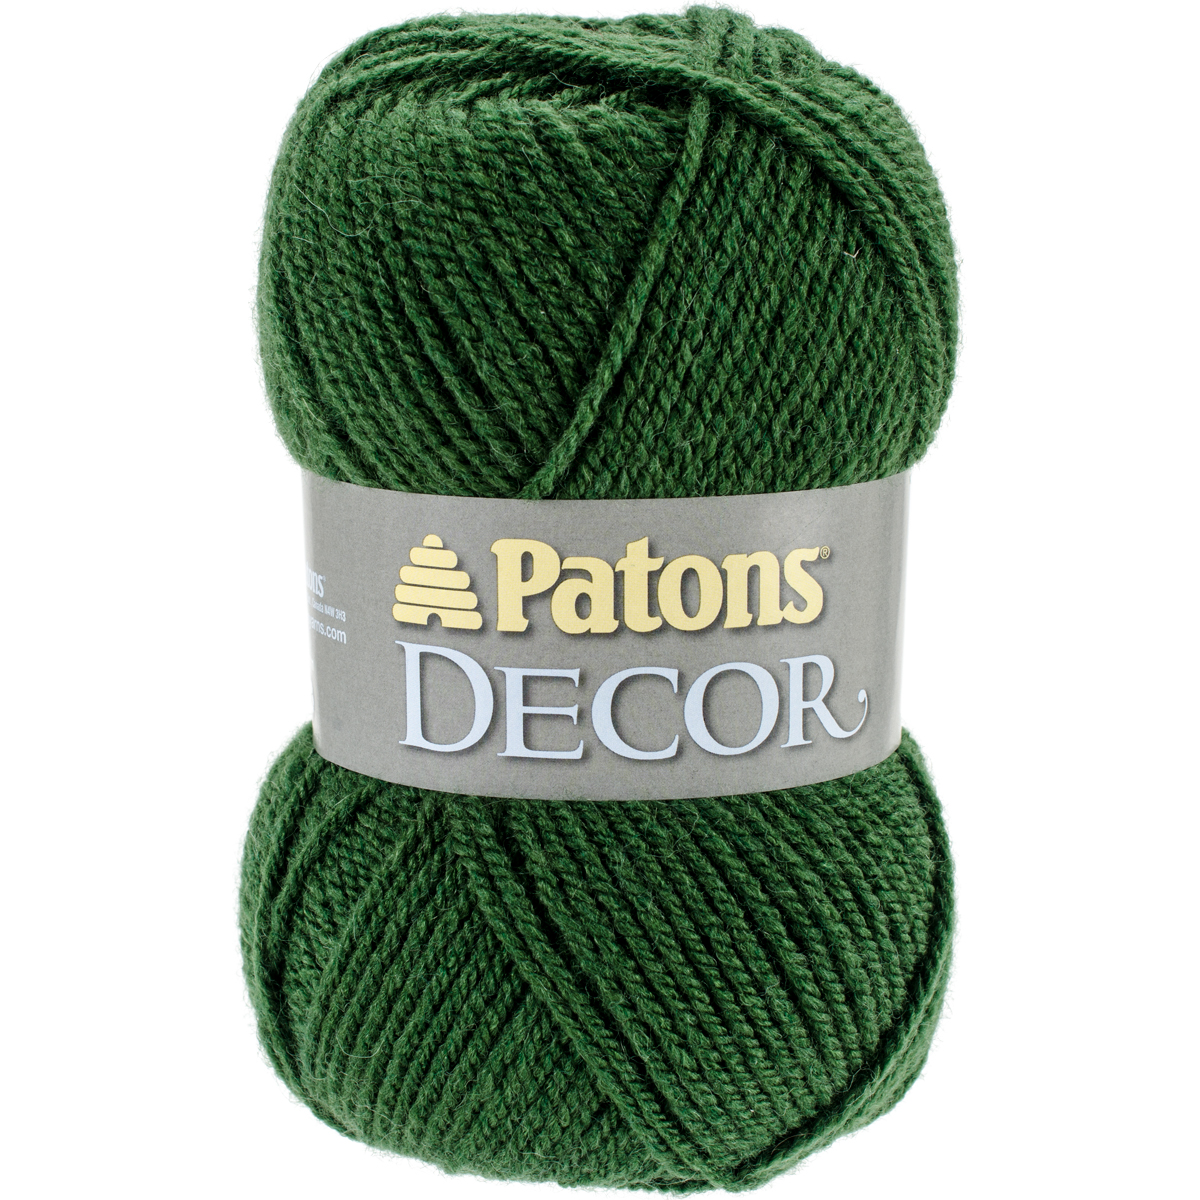 Patons-Decor-Yarn-Pine-244087-87716